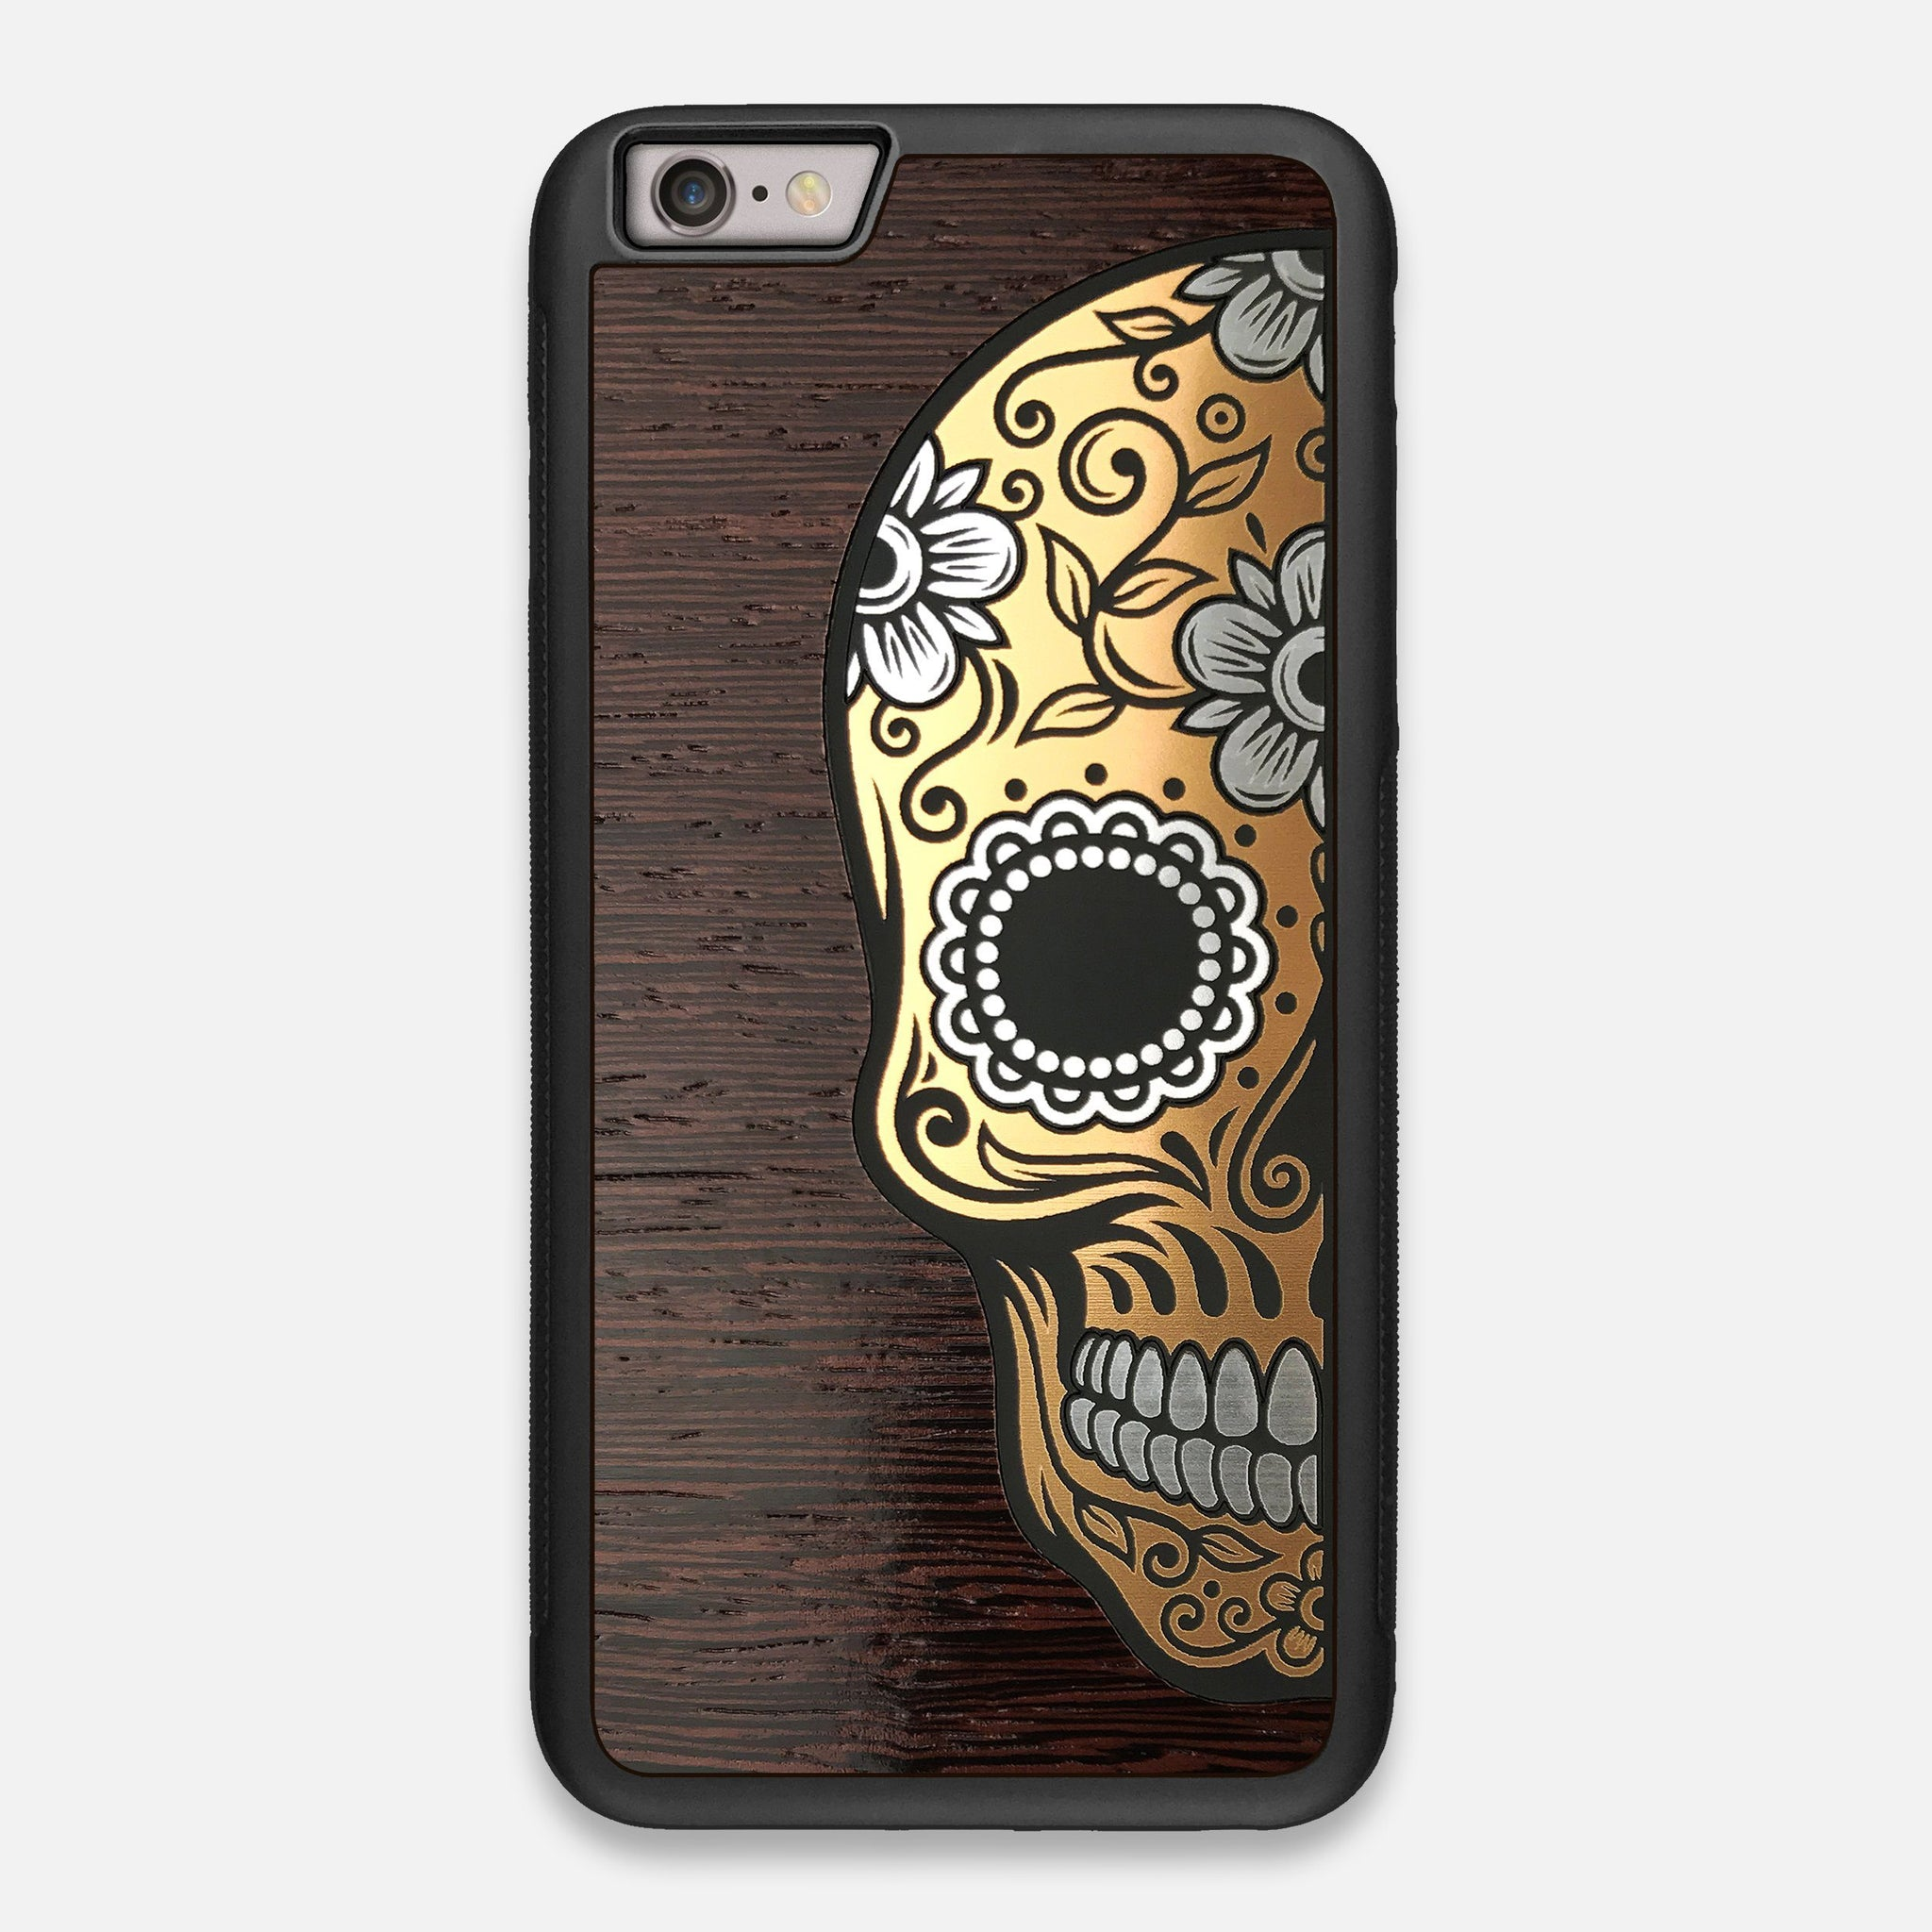 Front view of the Calavera Wood Sugar Skull Wood iPhone 6 Plus Case by Keyway Designs